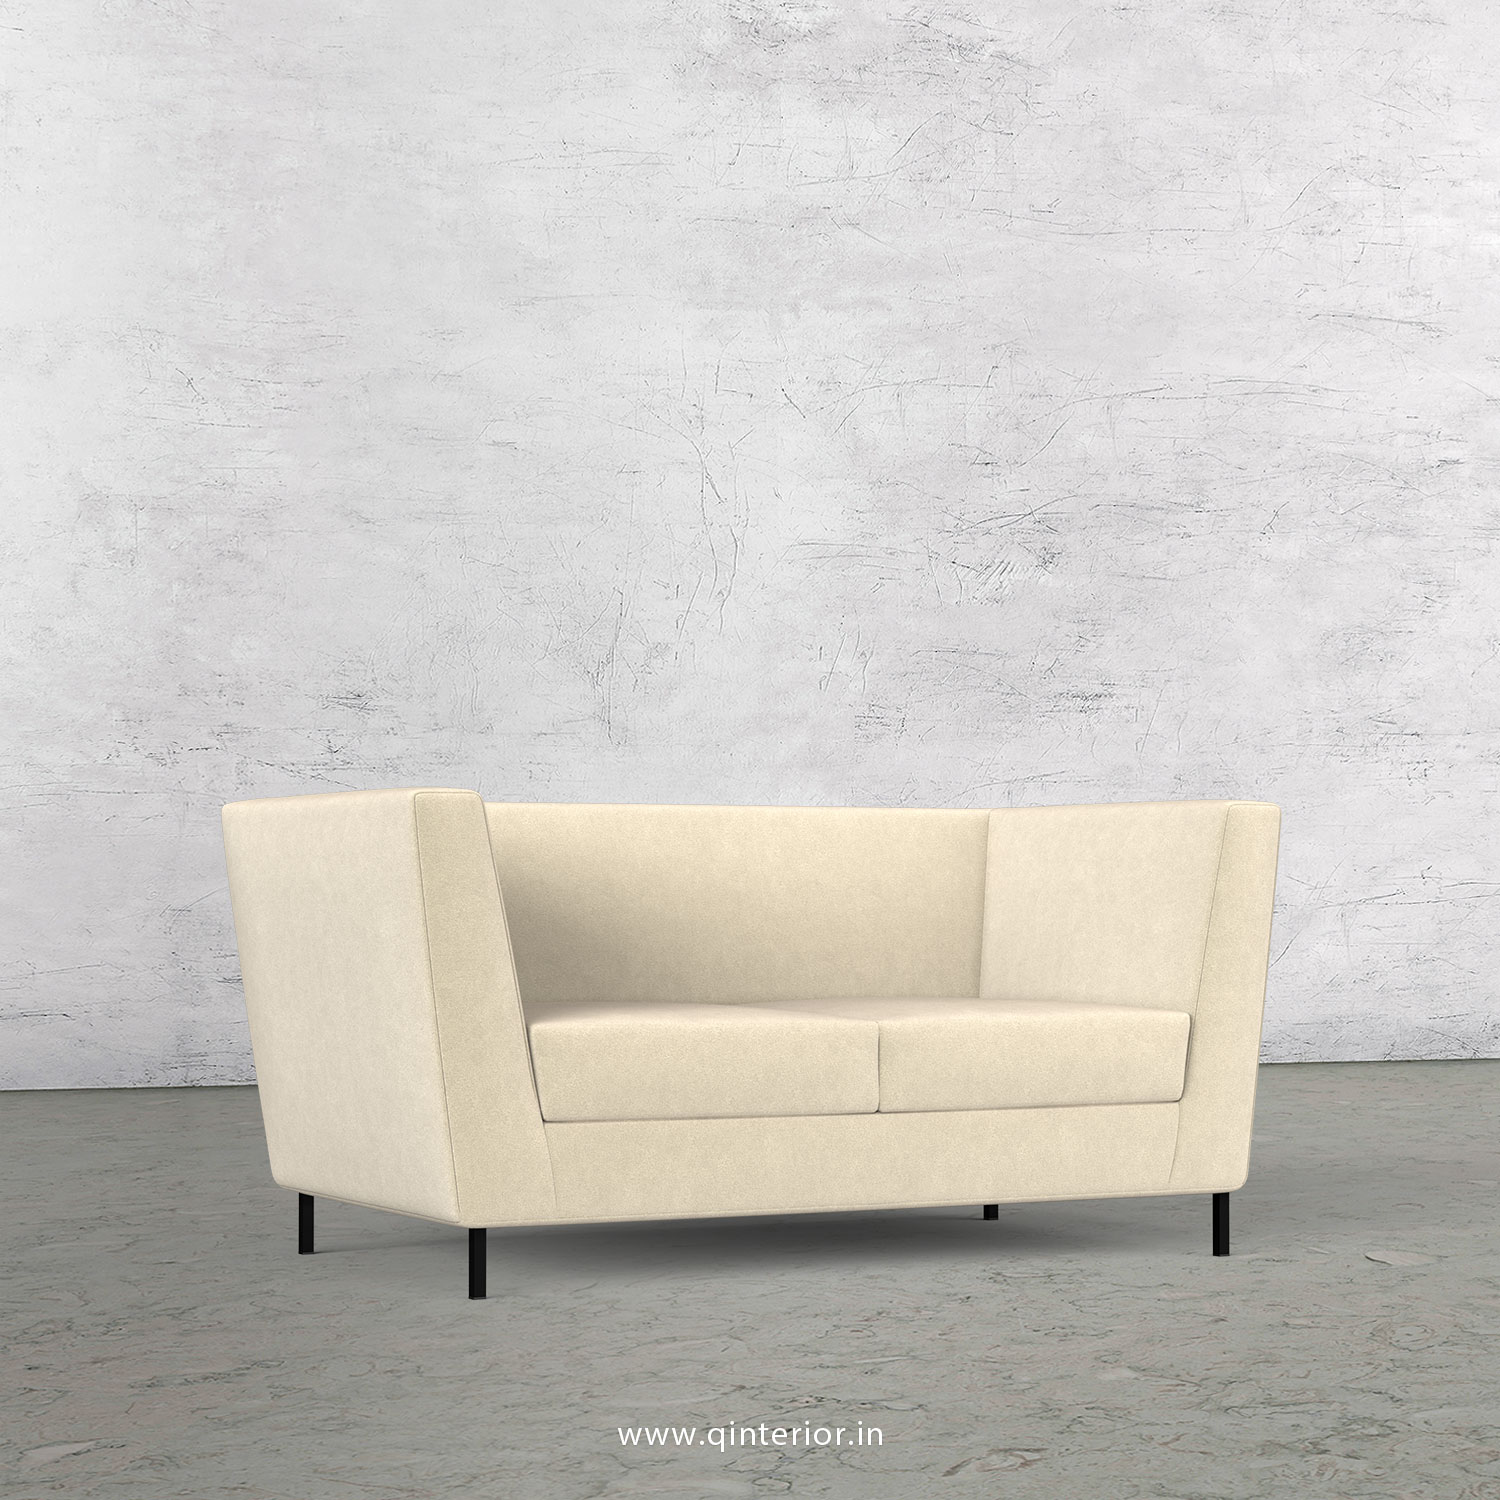 Gloria 2 Seater Sofa in Velvet Fabric - SFA018 VL01